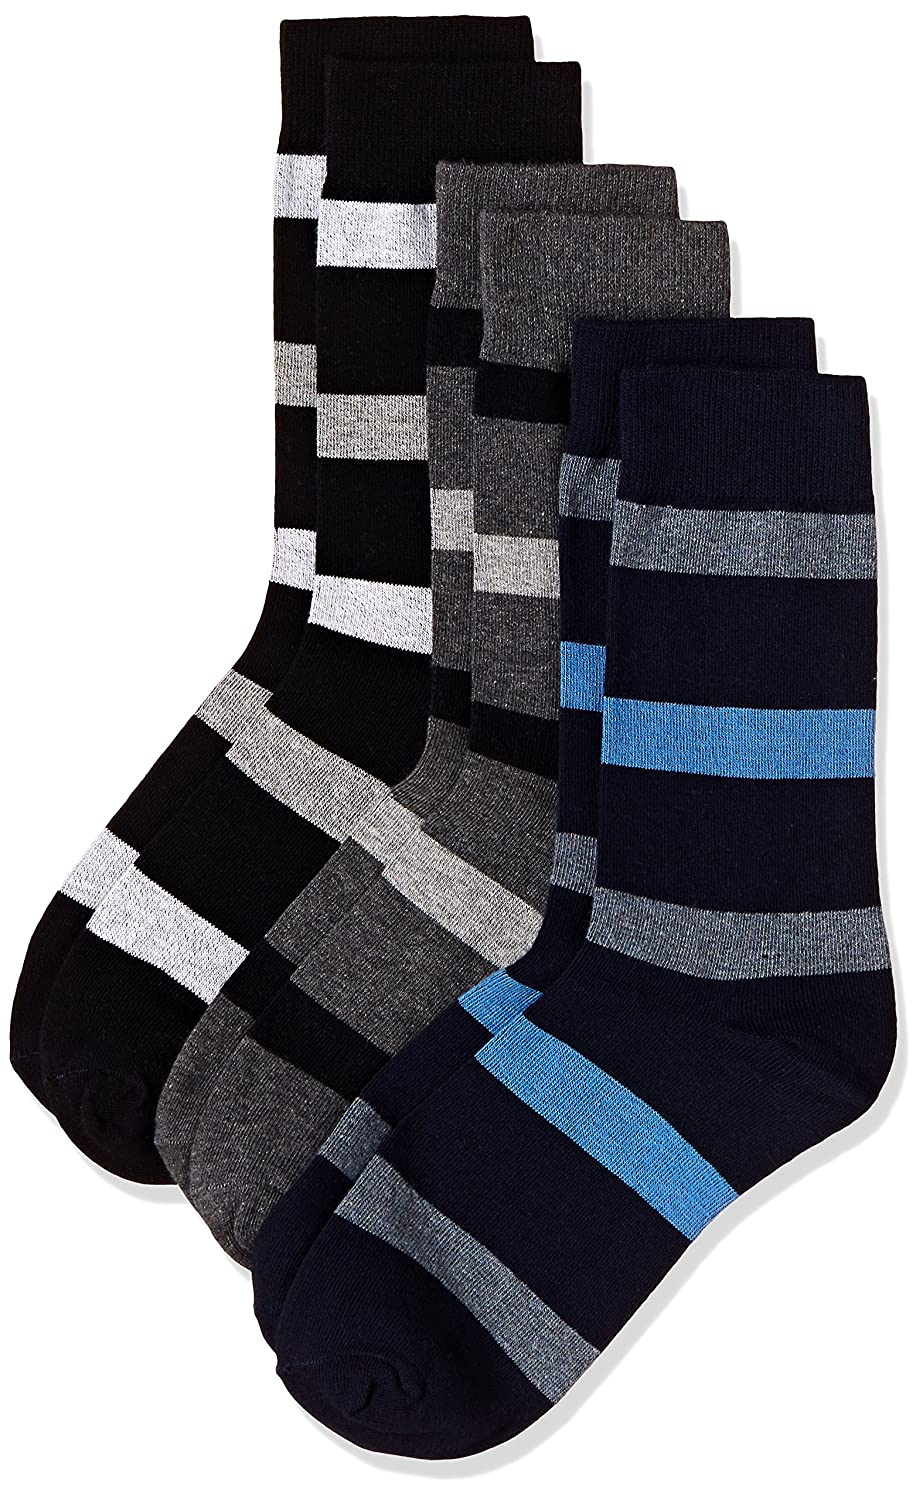 Amazon Brand - Symbol Men's Cotton Liner Socks (Combo Pack of 3)